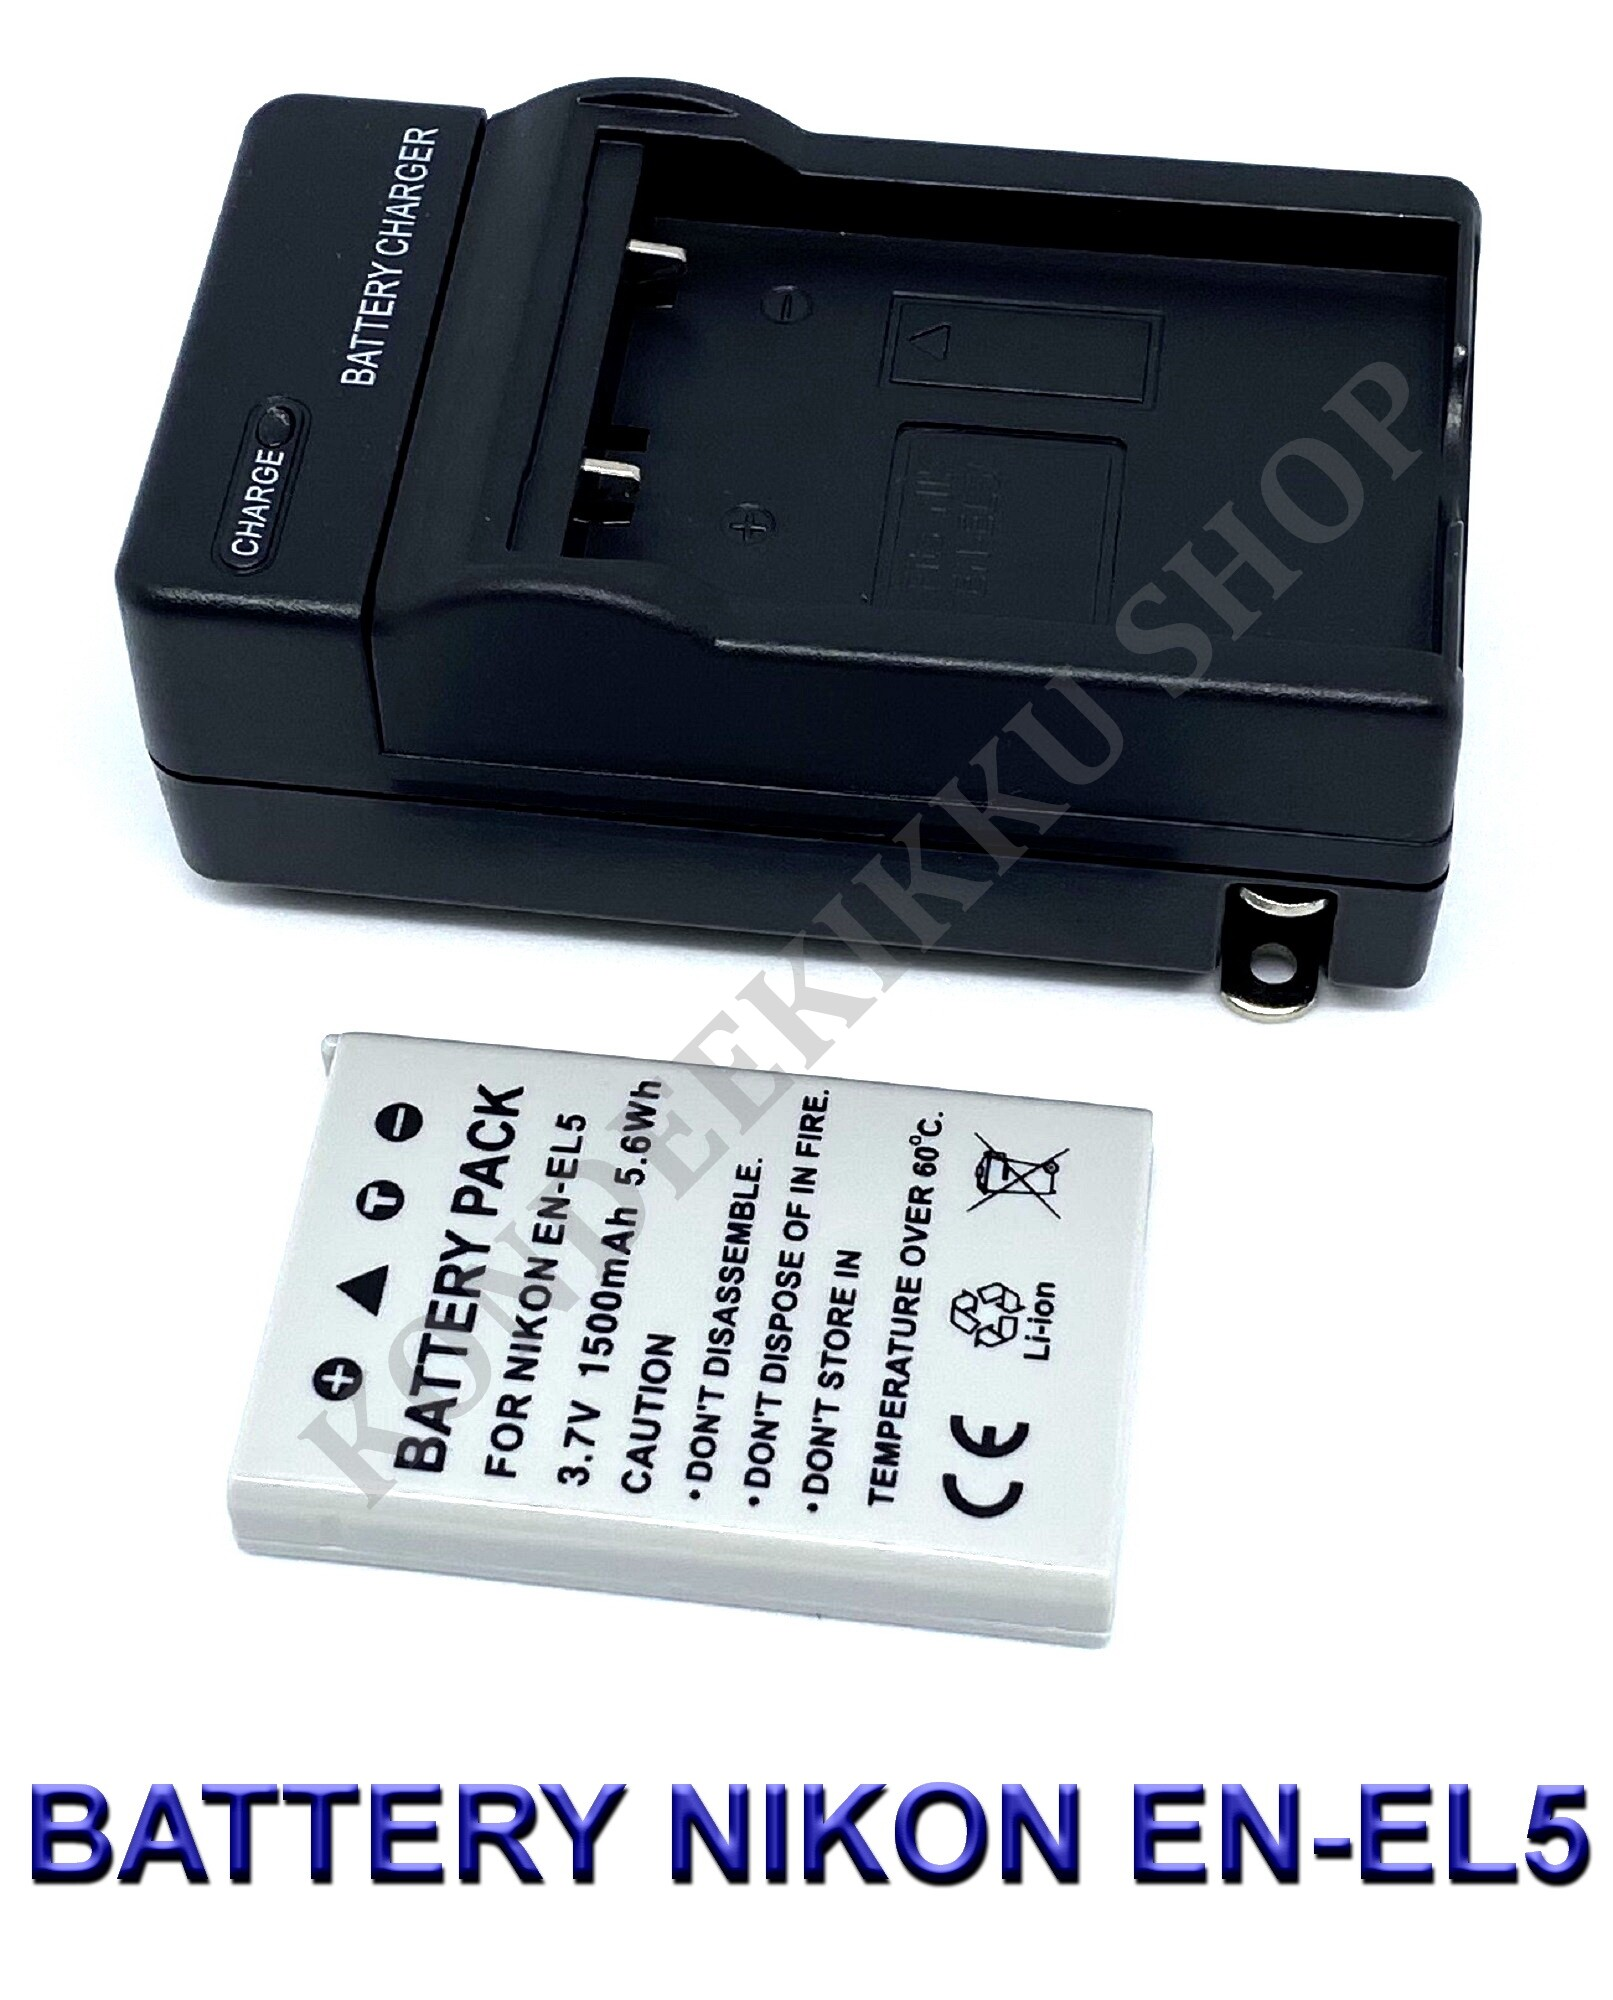 USB Battery Charger EN-EL5 For Nikon Coolpix P5000 4200 P100 Digital Camera